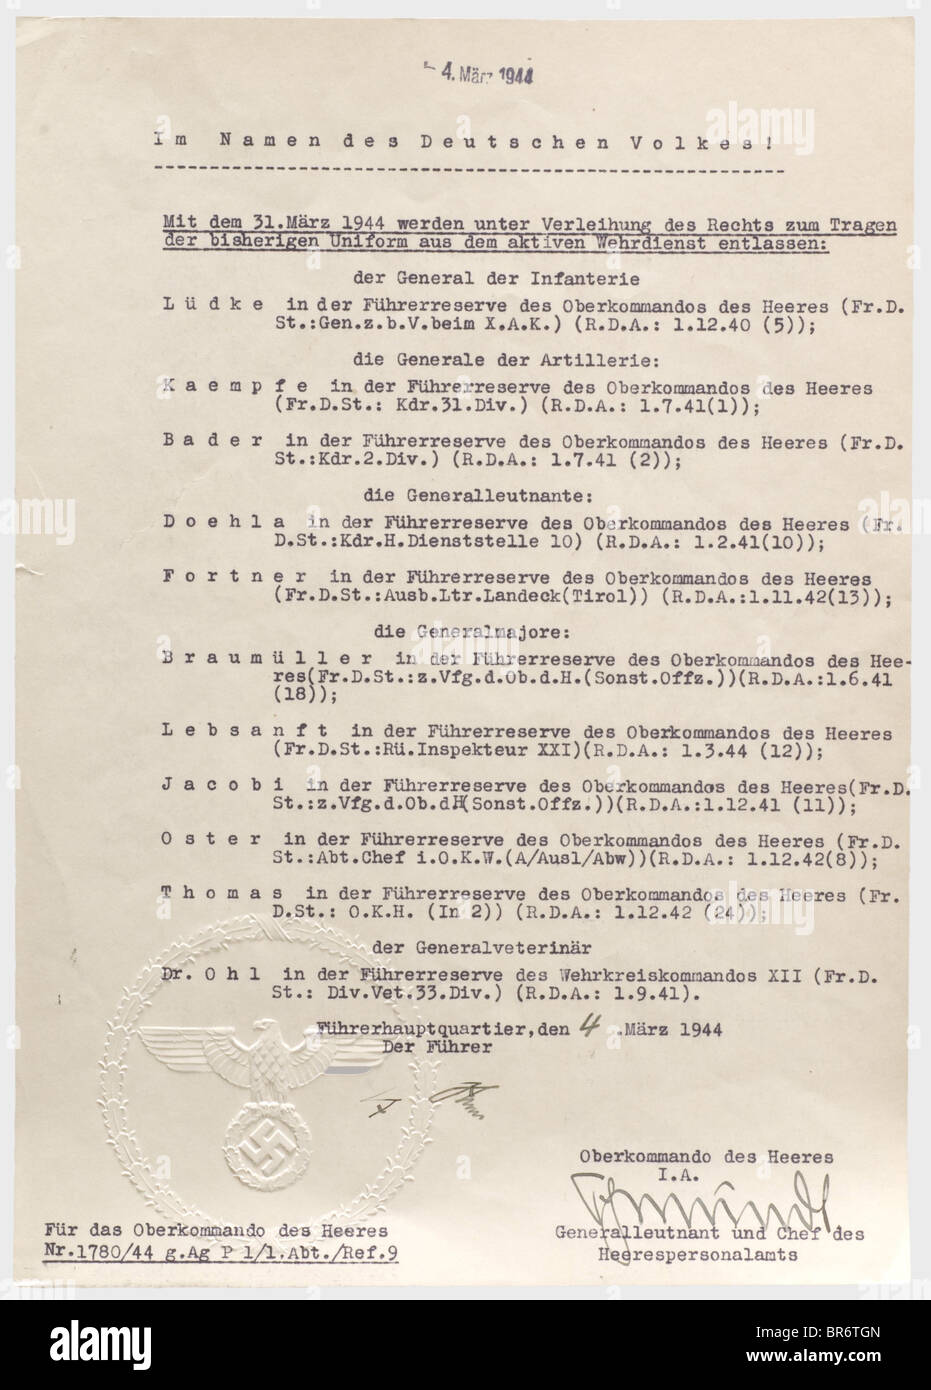 Adolf Hitler - an order of dismissal for eleven generals, effective on 31st March 1944. Dismissed from active service - Stock Image